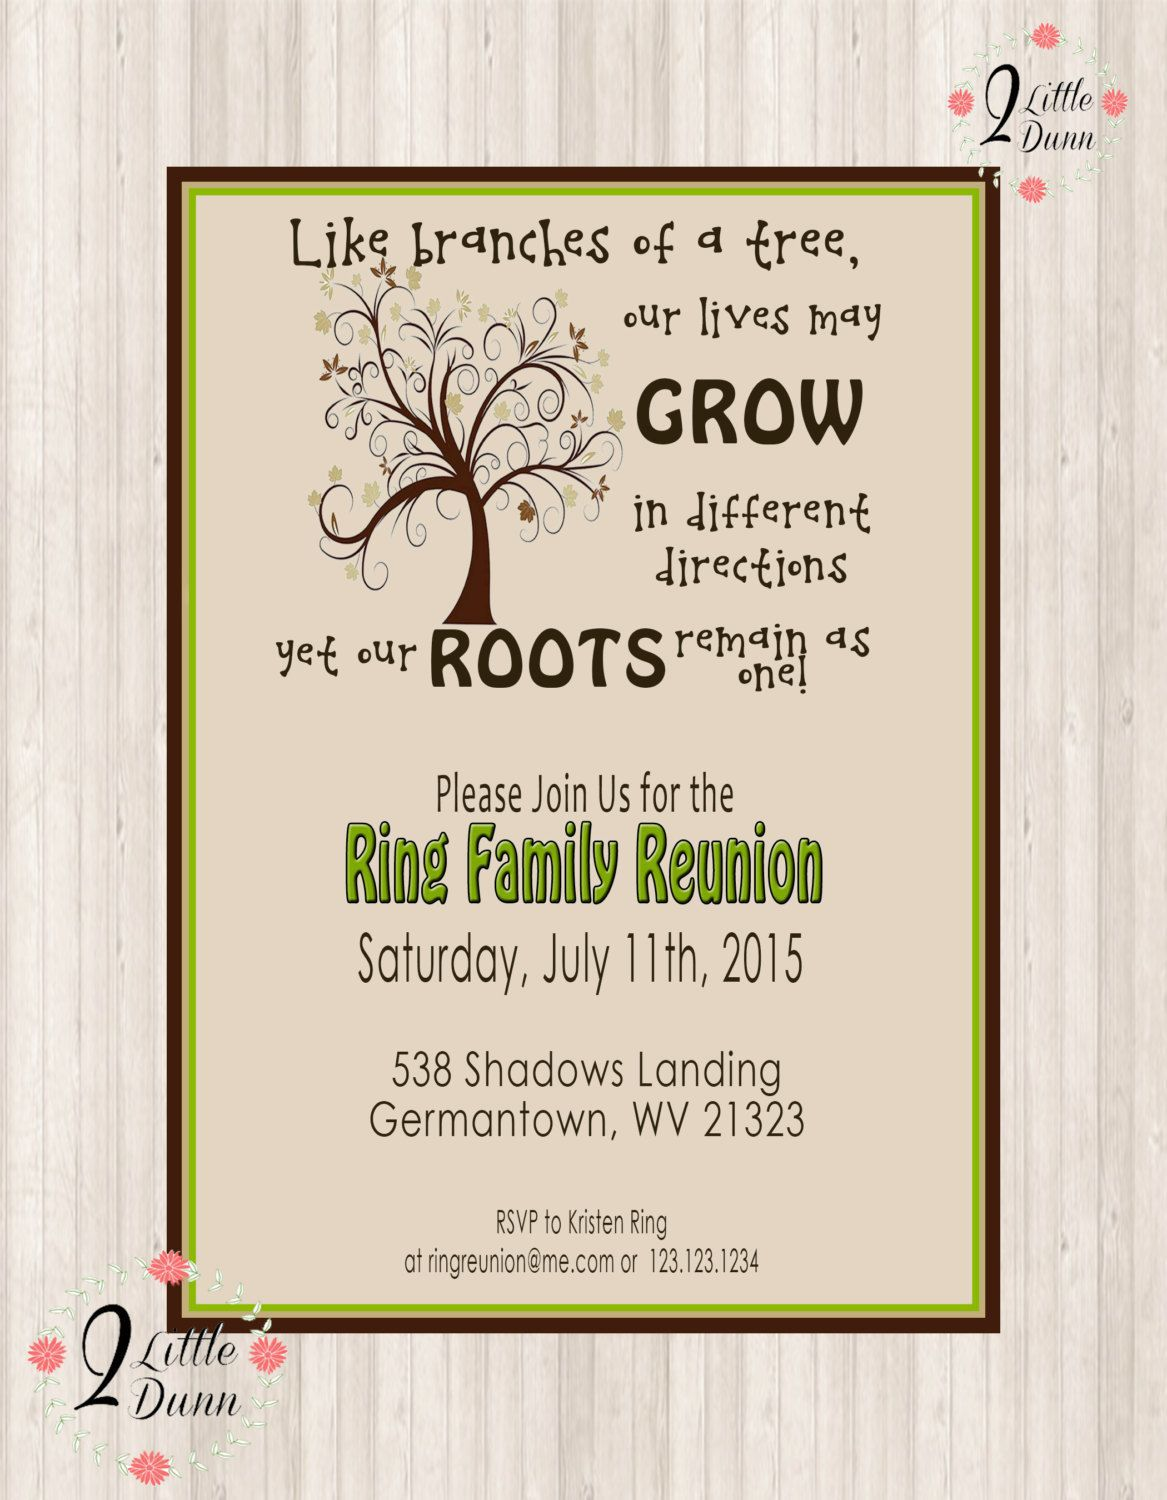 002 Imposing Family Reunion Invitation Template Free Highest Clarity  For Word OnlineFull